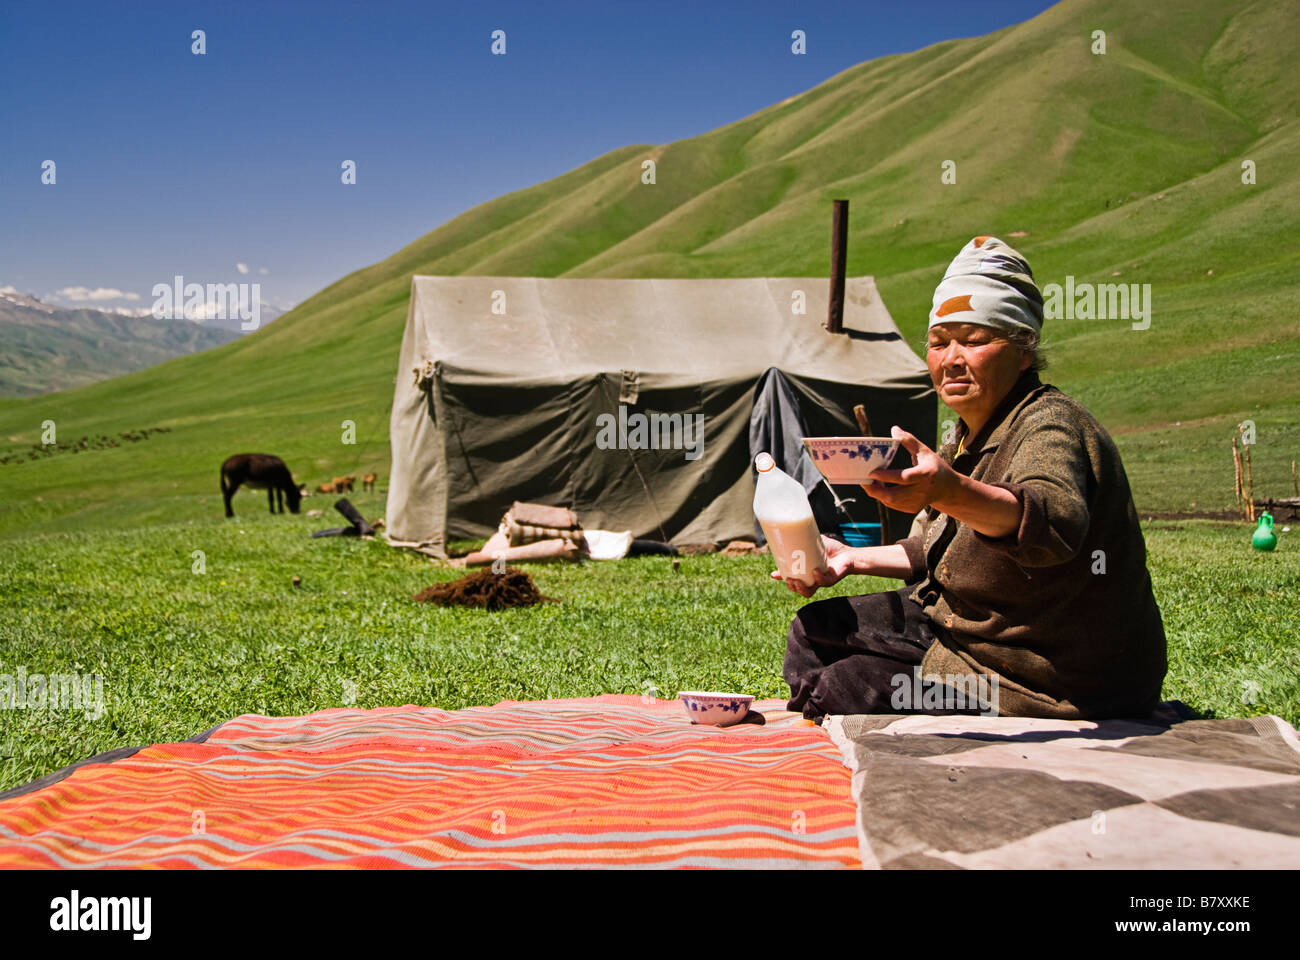 Kyrgyz woman outside a tent drinking horse milk Kyrgyzstan Stock Photo